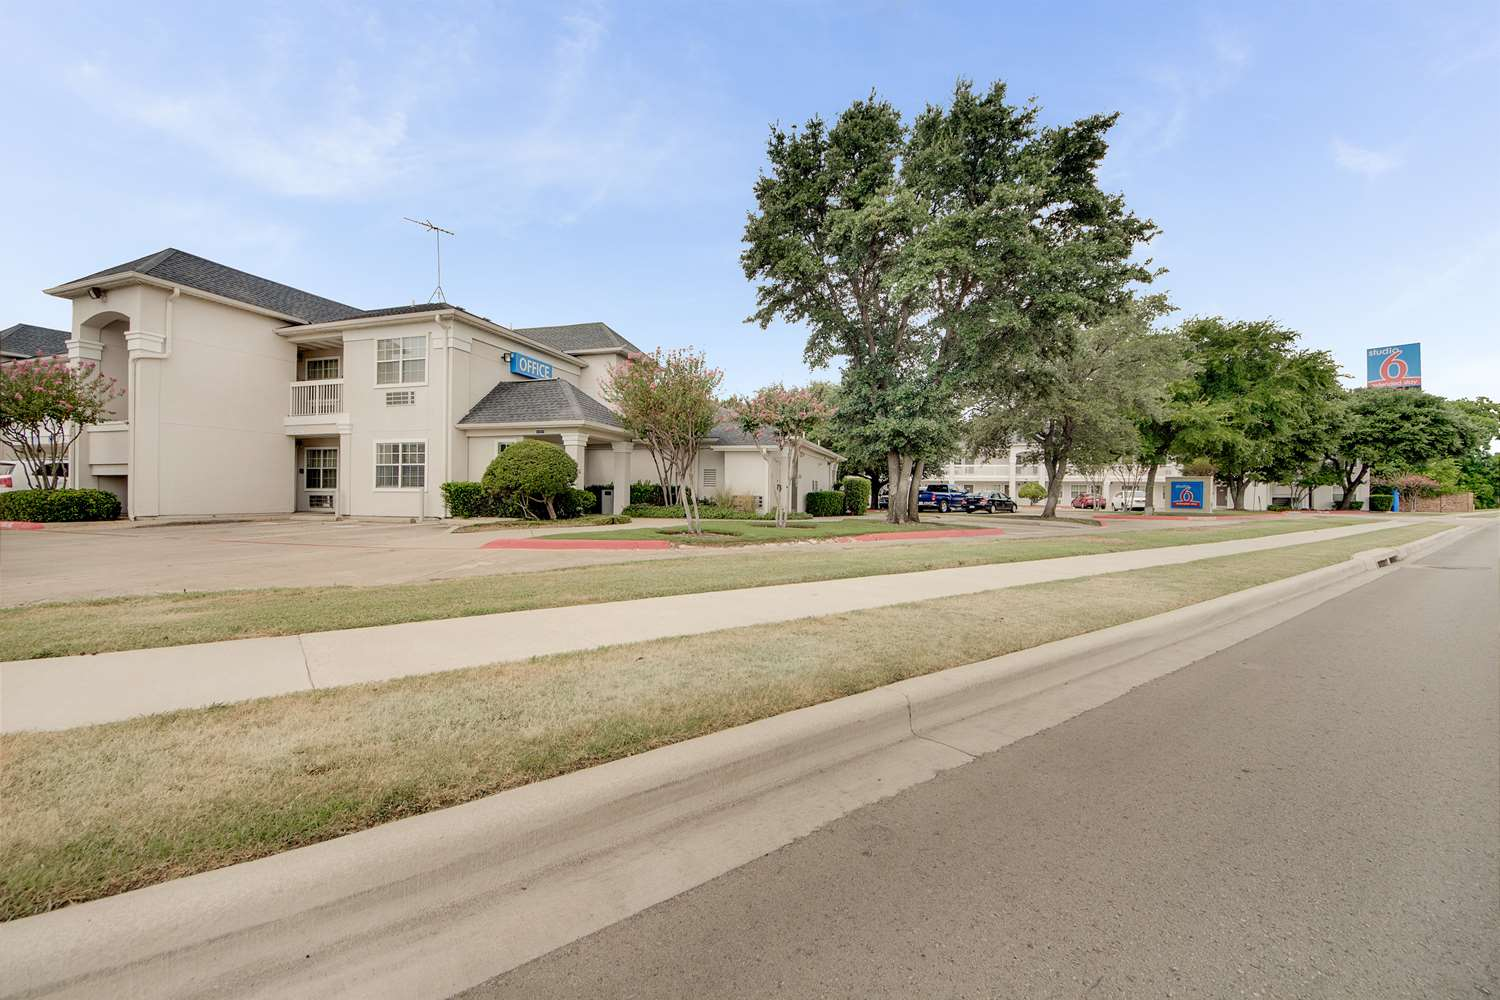 Studio 6 Extended Stay Hotel North Richland Hills, TX - See